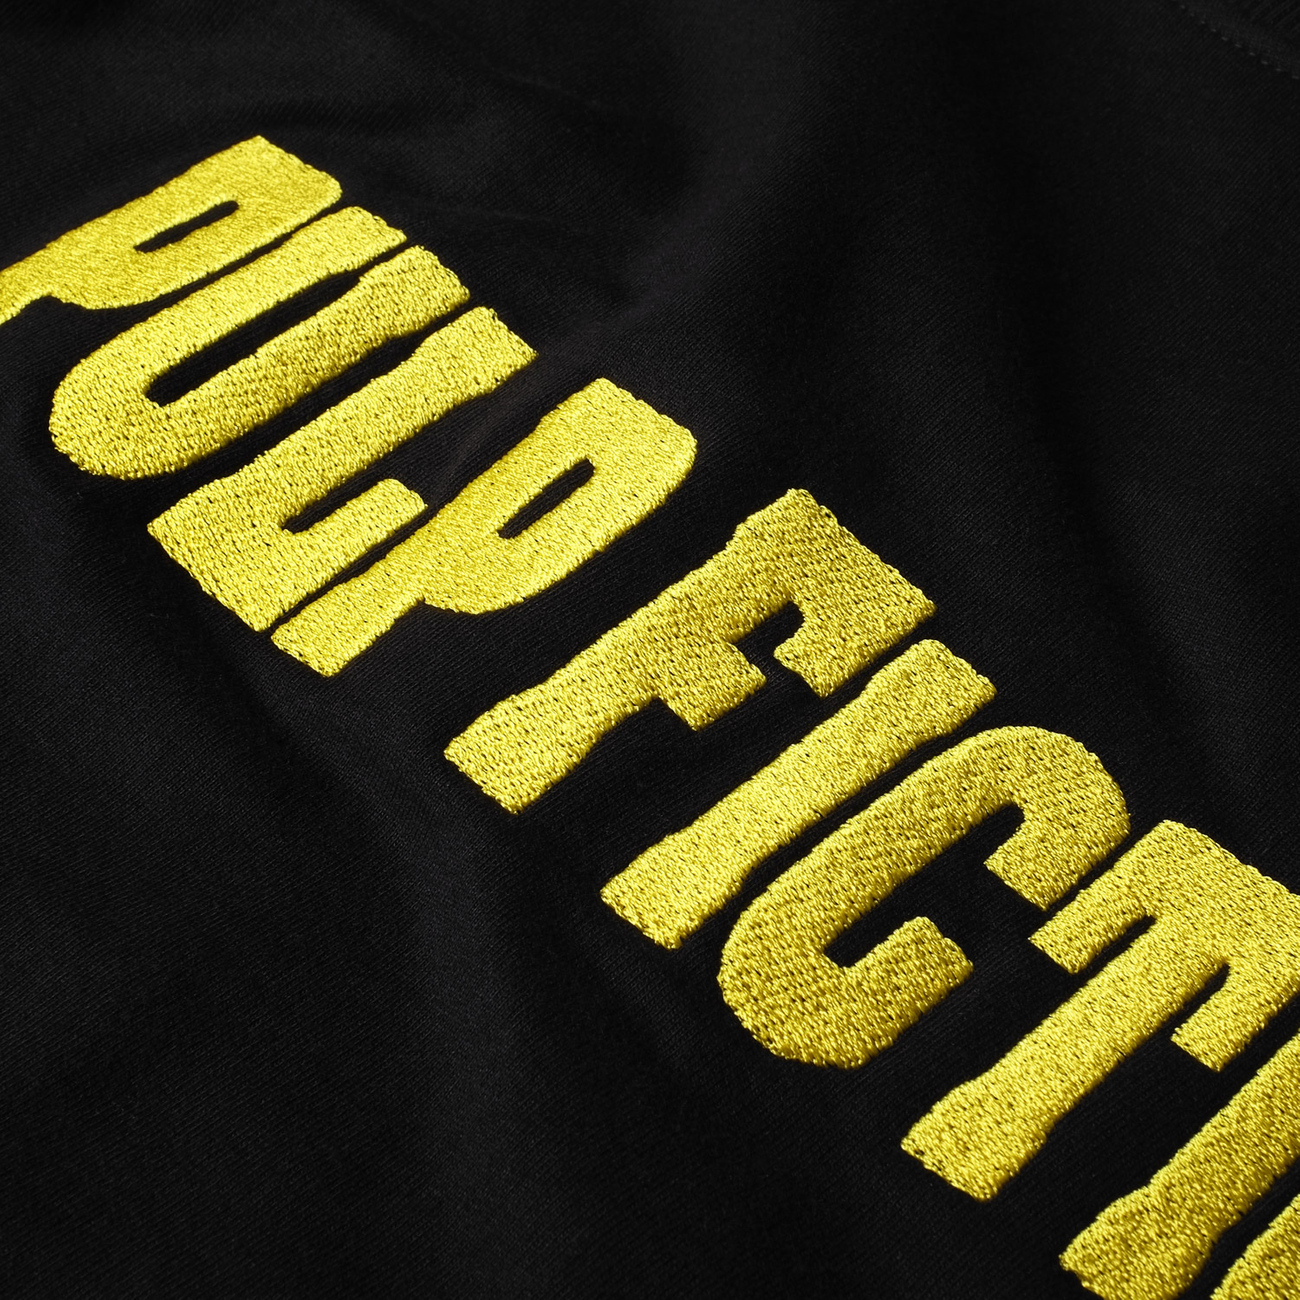 Sweatshirt Ystad Pulp Fiction